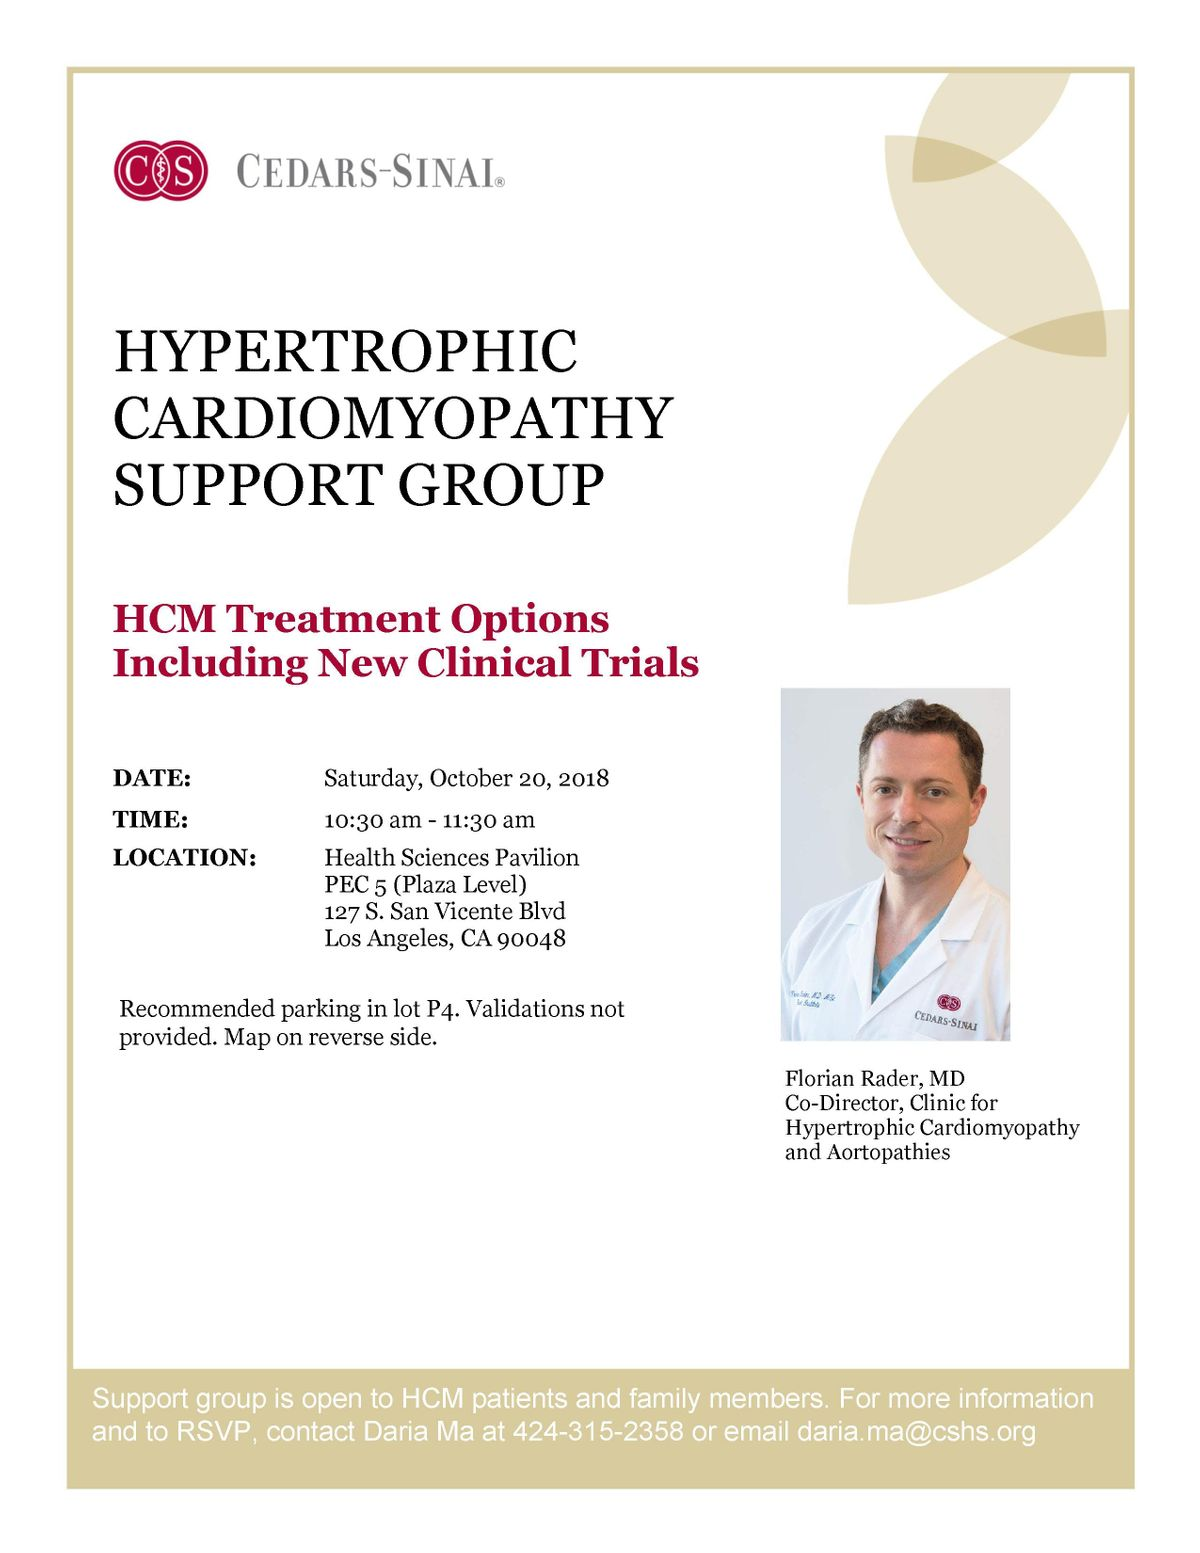 Hypertrophic Cardiomyopathy Support Group at Cedars-Sinai